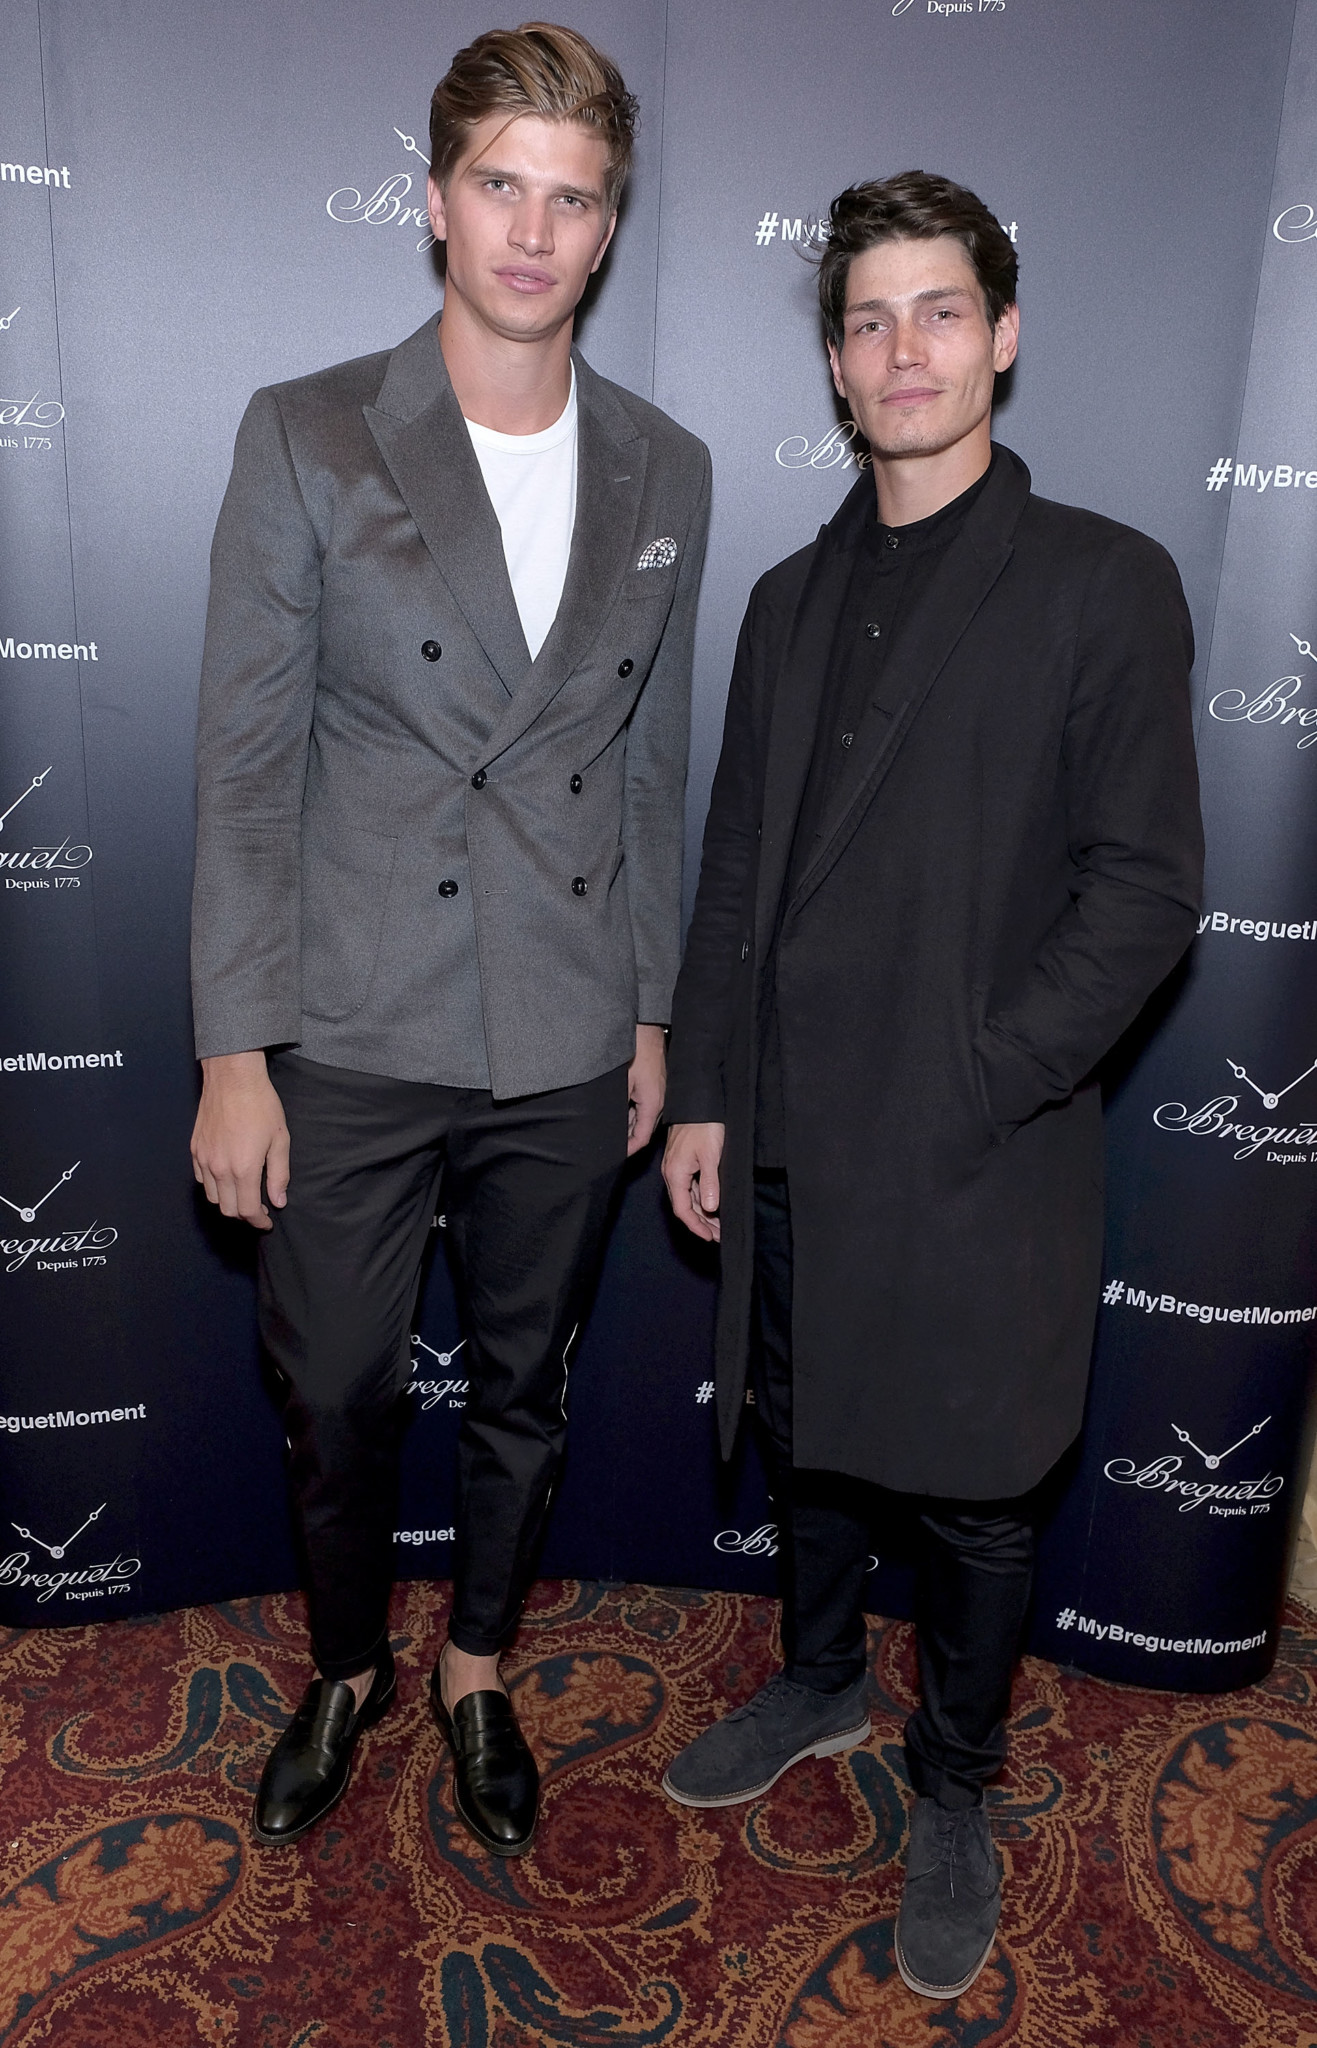 LONDON, ENGLAND - OCTOBER 04: Toby Huntington-Whiteley and Sam Way attend the Breguet Classic Tour #MyBreguetMoment in association with The Gentleman's Journal at Mark's Club on October 4, 2017 in London, England. (Photo by David M. Benett/Dave Benett/Getty Images for Breguet) *** Local Caption *** Toby Huntington-Whiteley; Sam Way